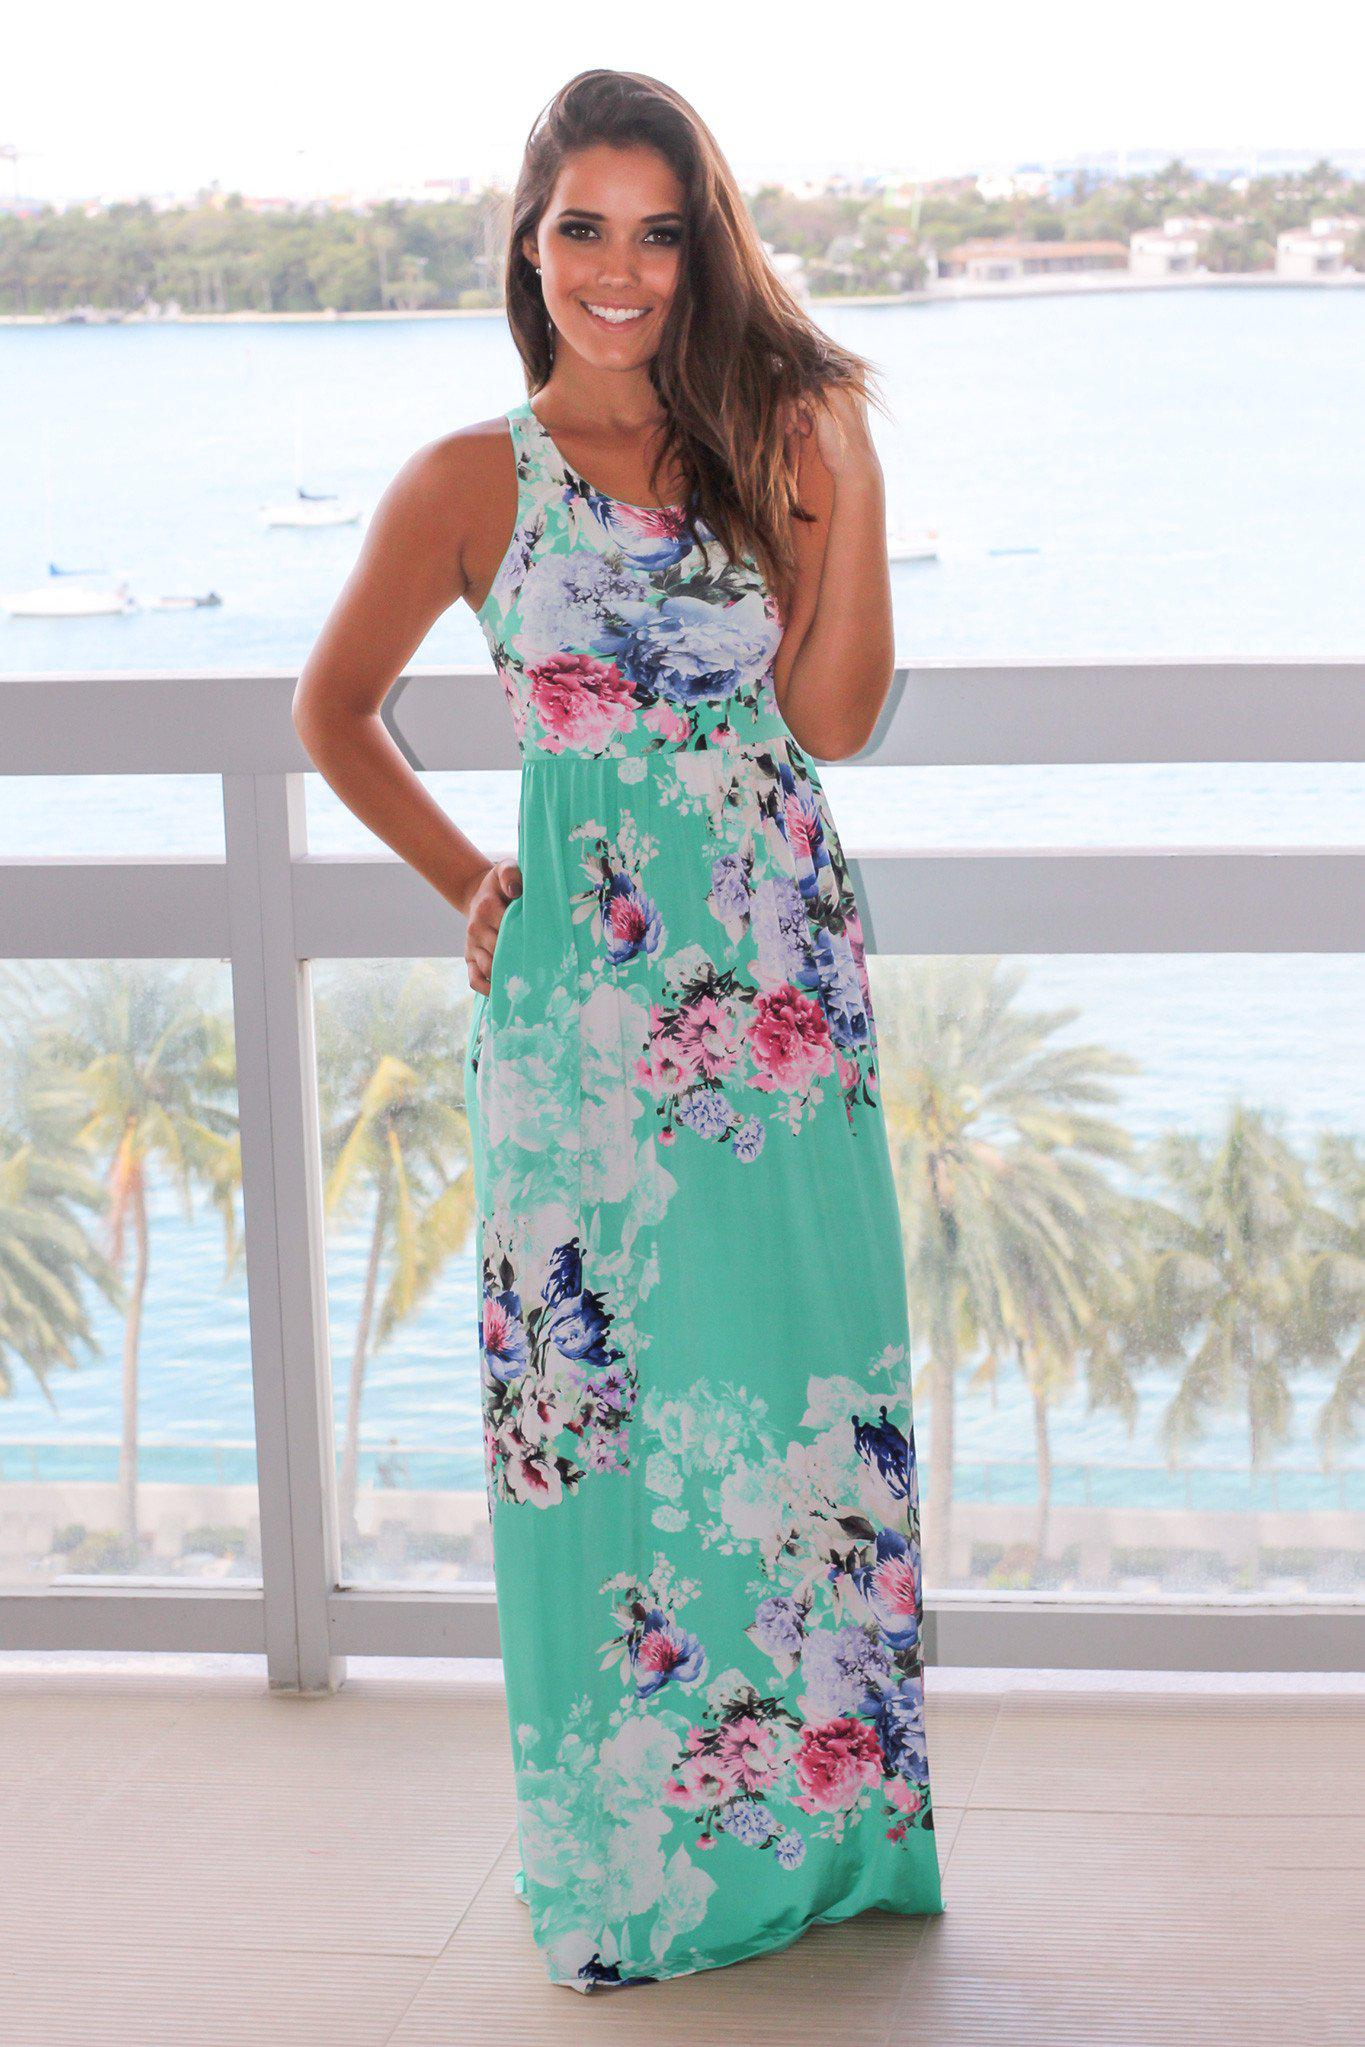 daf2513805b Mint and Pink Floral Racer Back Maxi Dress | Maxi Dresses – Saved by ...